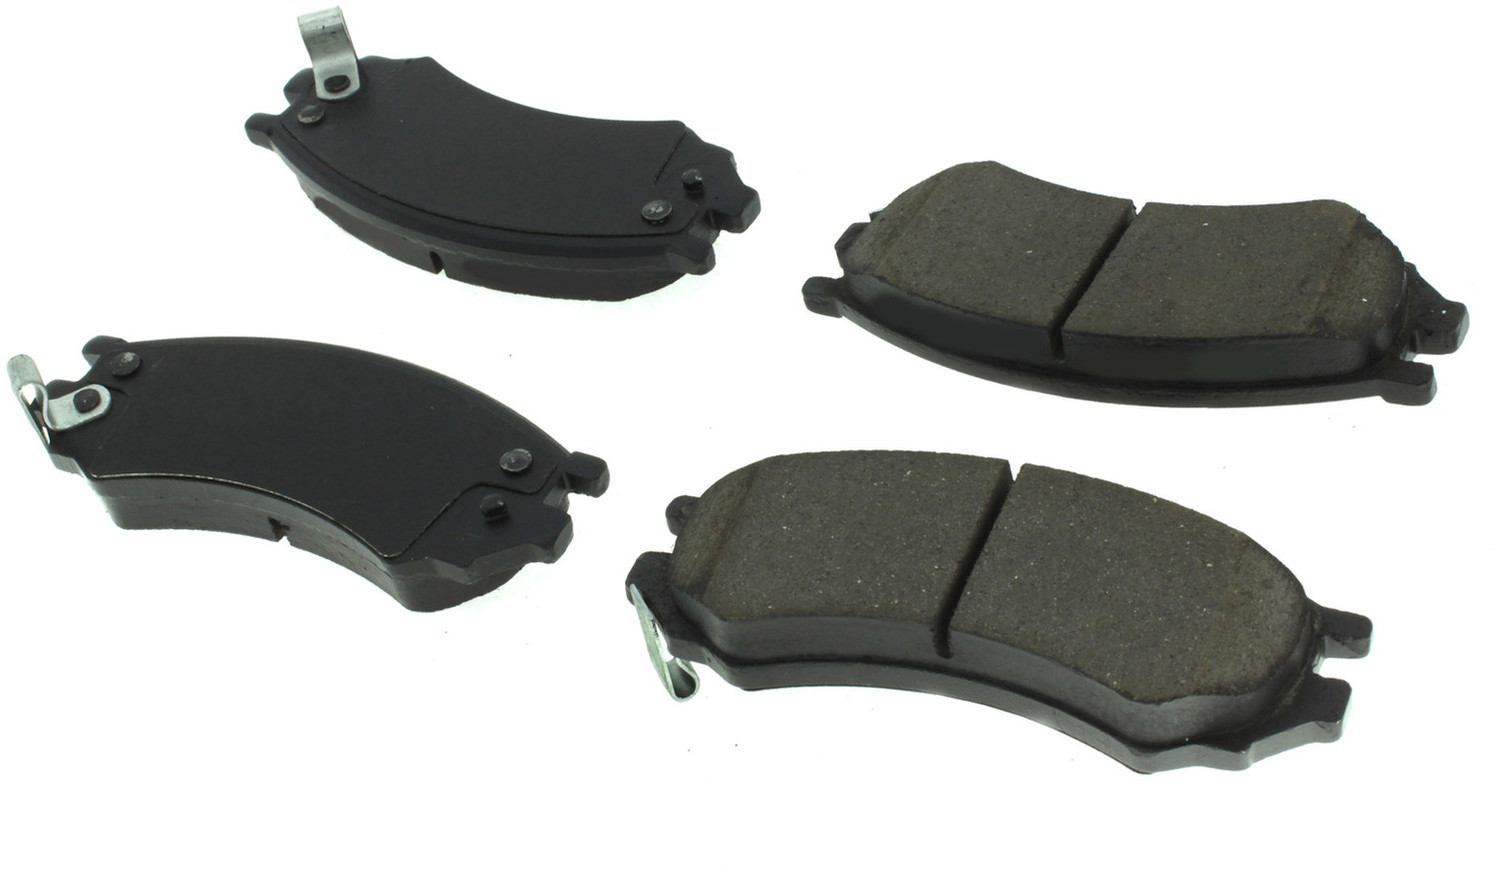 CENTRIC PARTS - Posi-Quiet Extended Wear Disc Brake Pad w/Shims & Hardware (Front) - CEC 106.05070